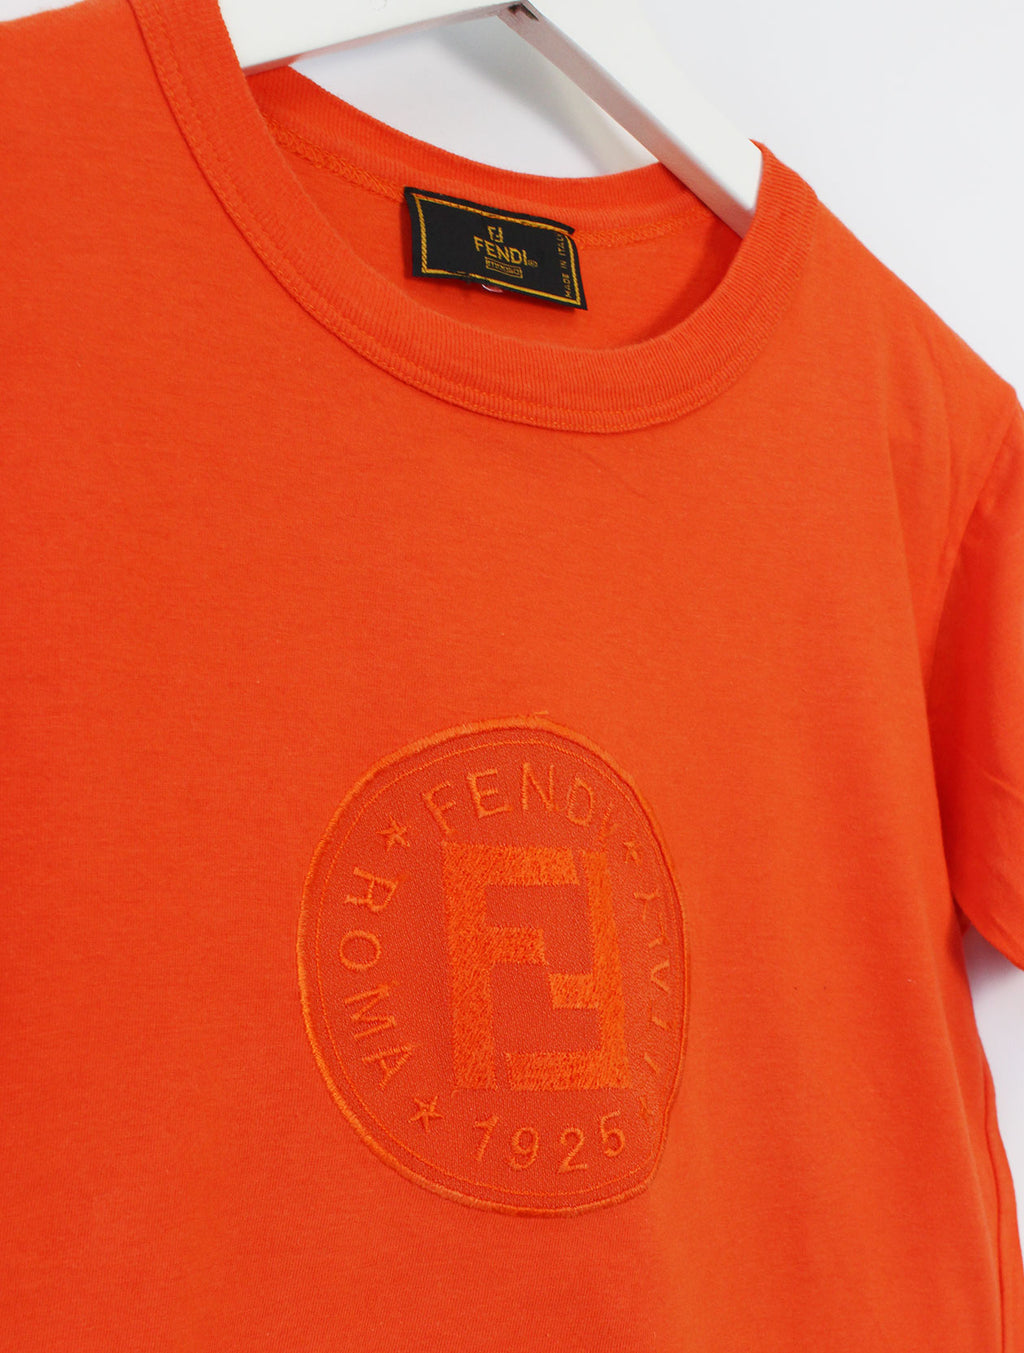 Women's Fendi T-Shirt (XS)